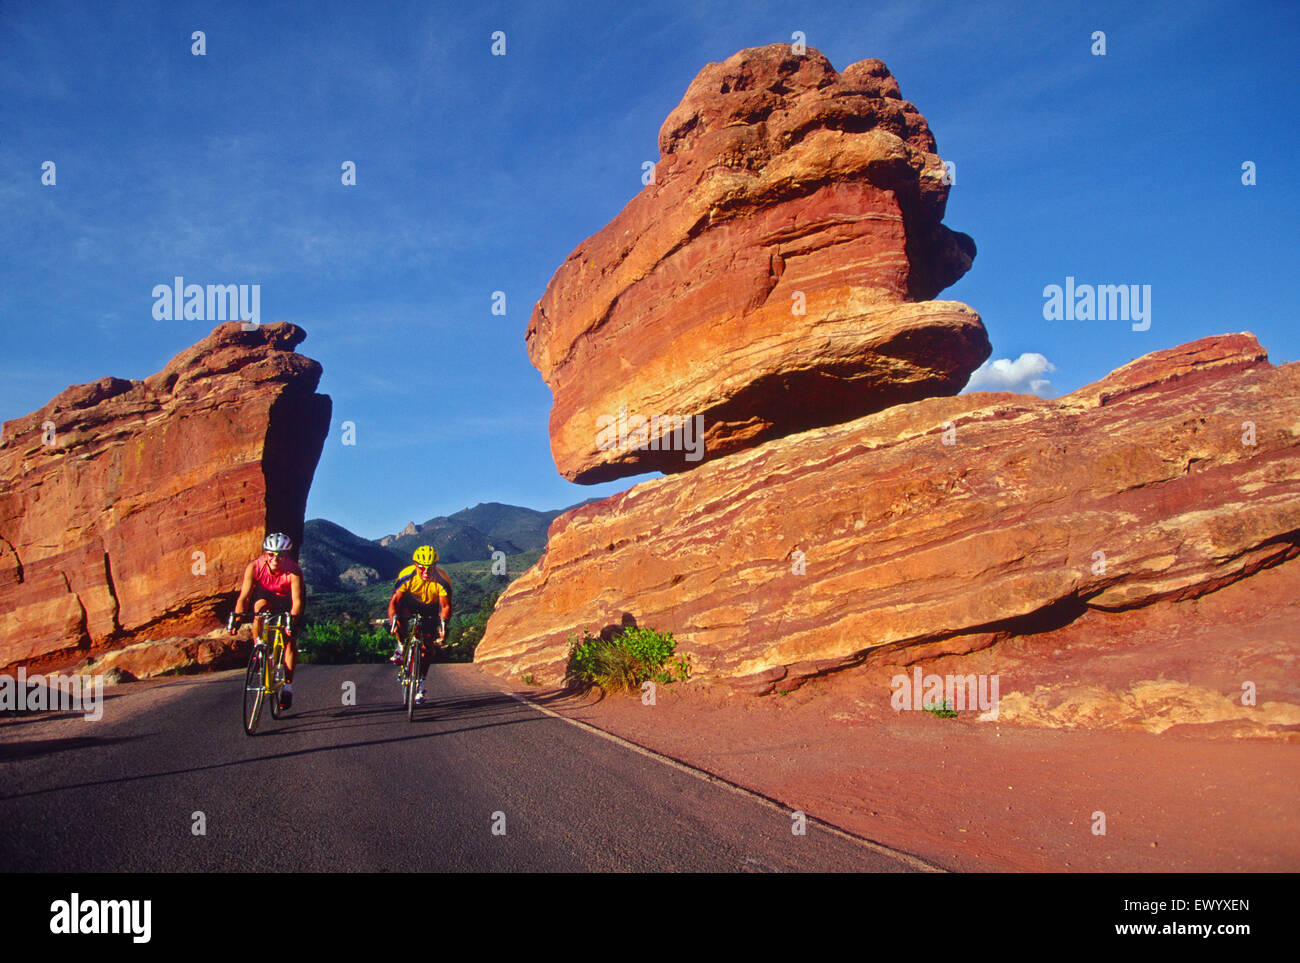 Cindy Burkart & Bruce Ruff cycling in the Garden of the Gods, CO USA Stock Photo